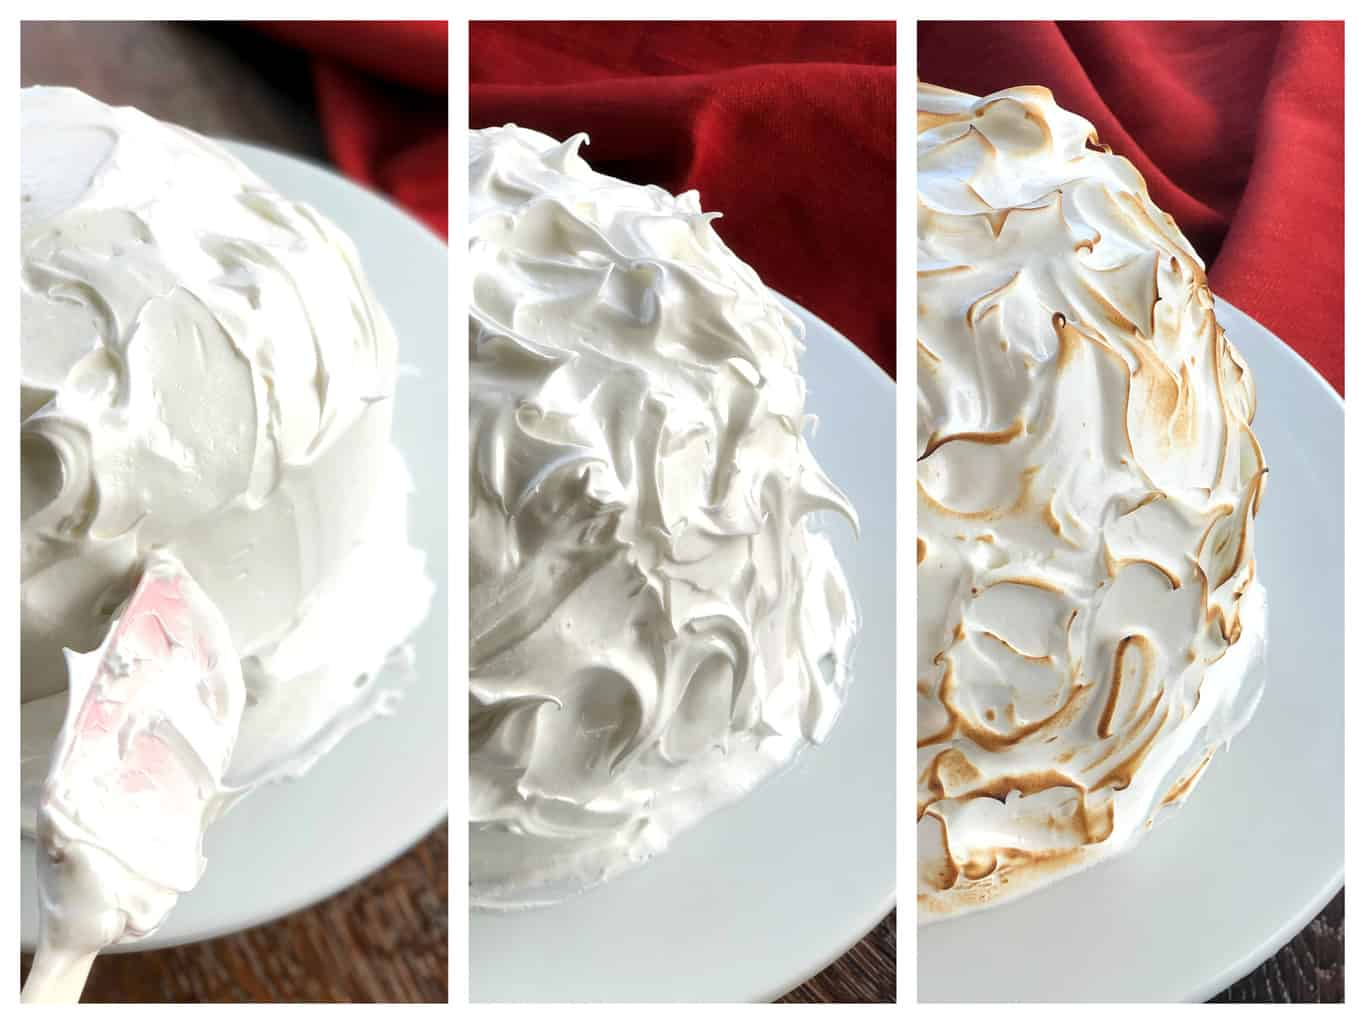 How to make a meringue for Baked Alaska